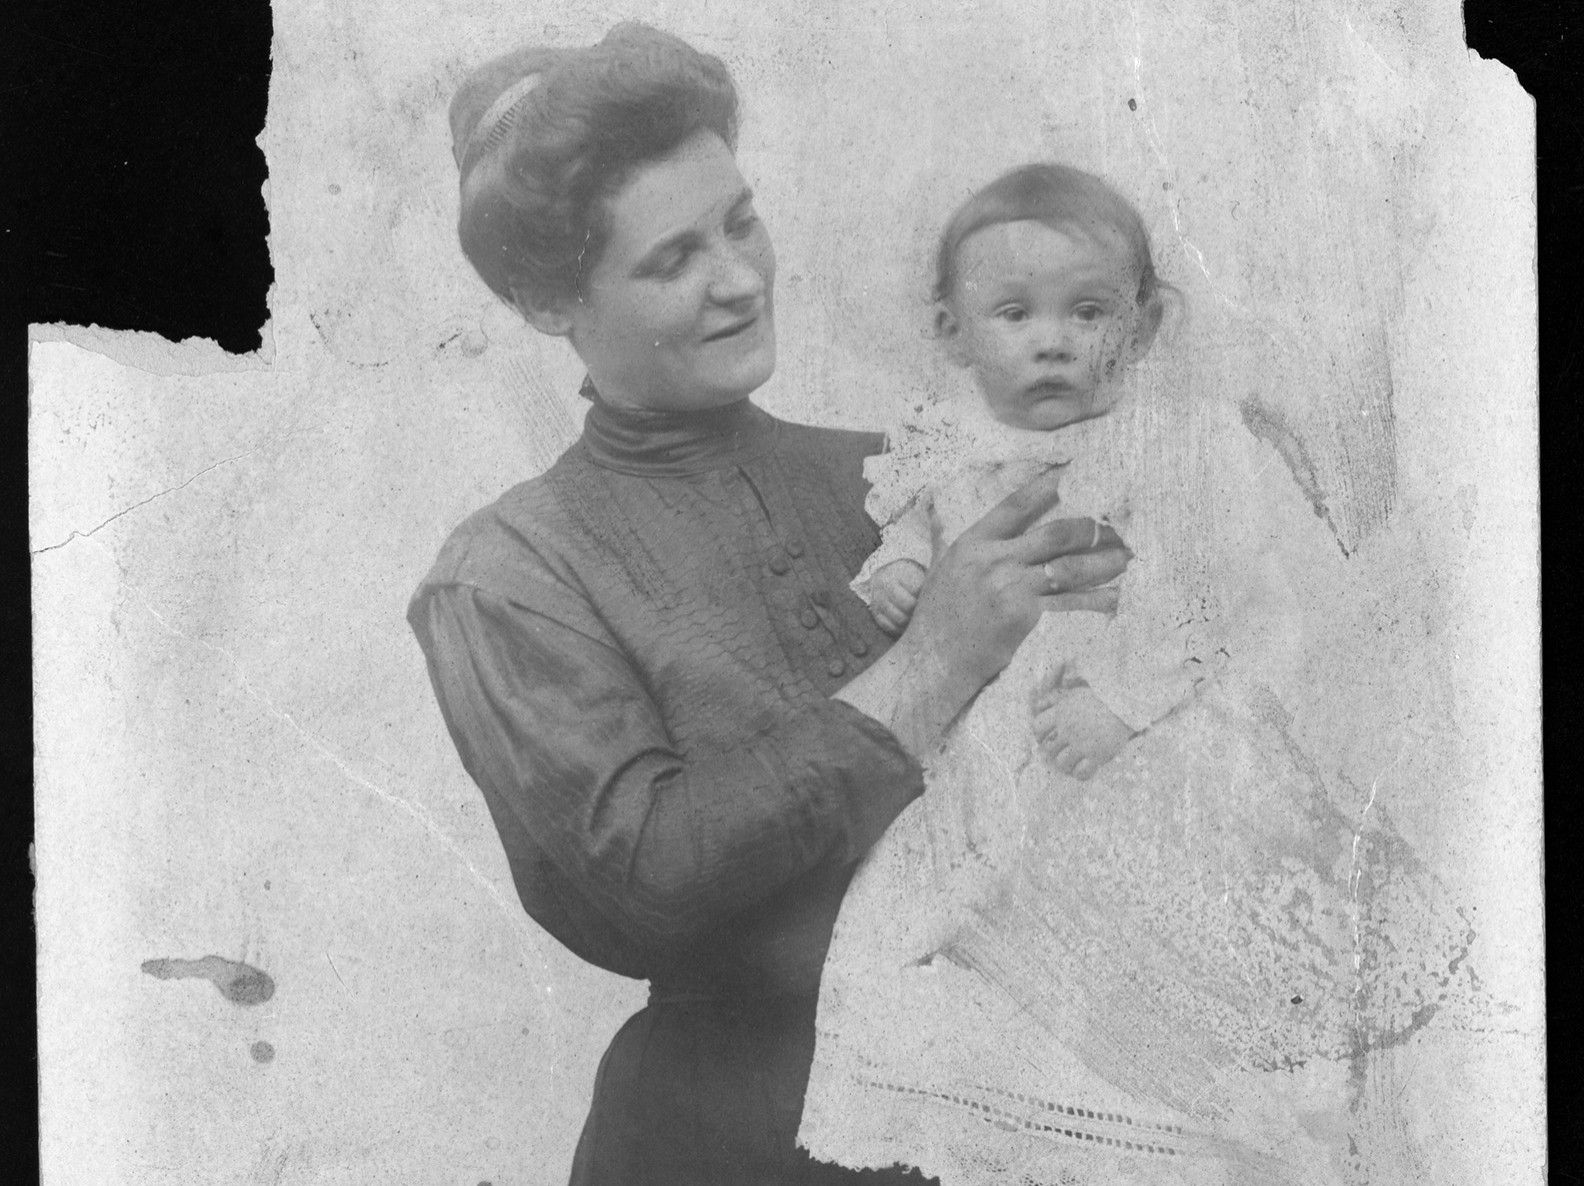 Sarah Burinescu at left holding one on of her children.